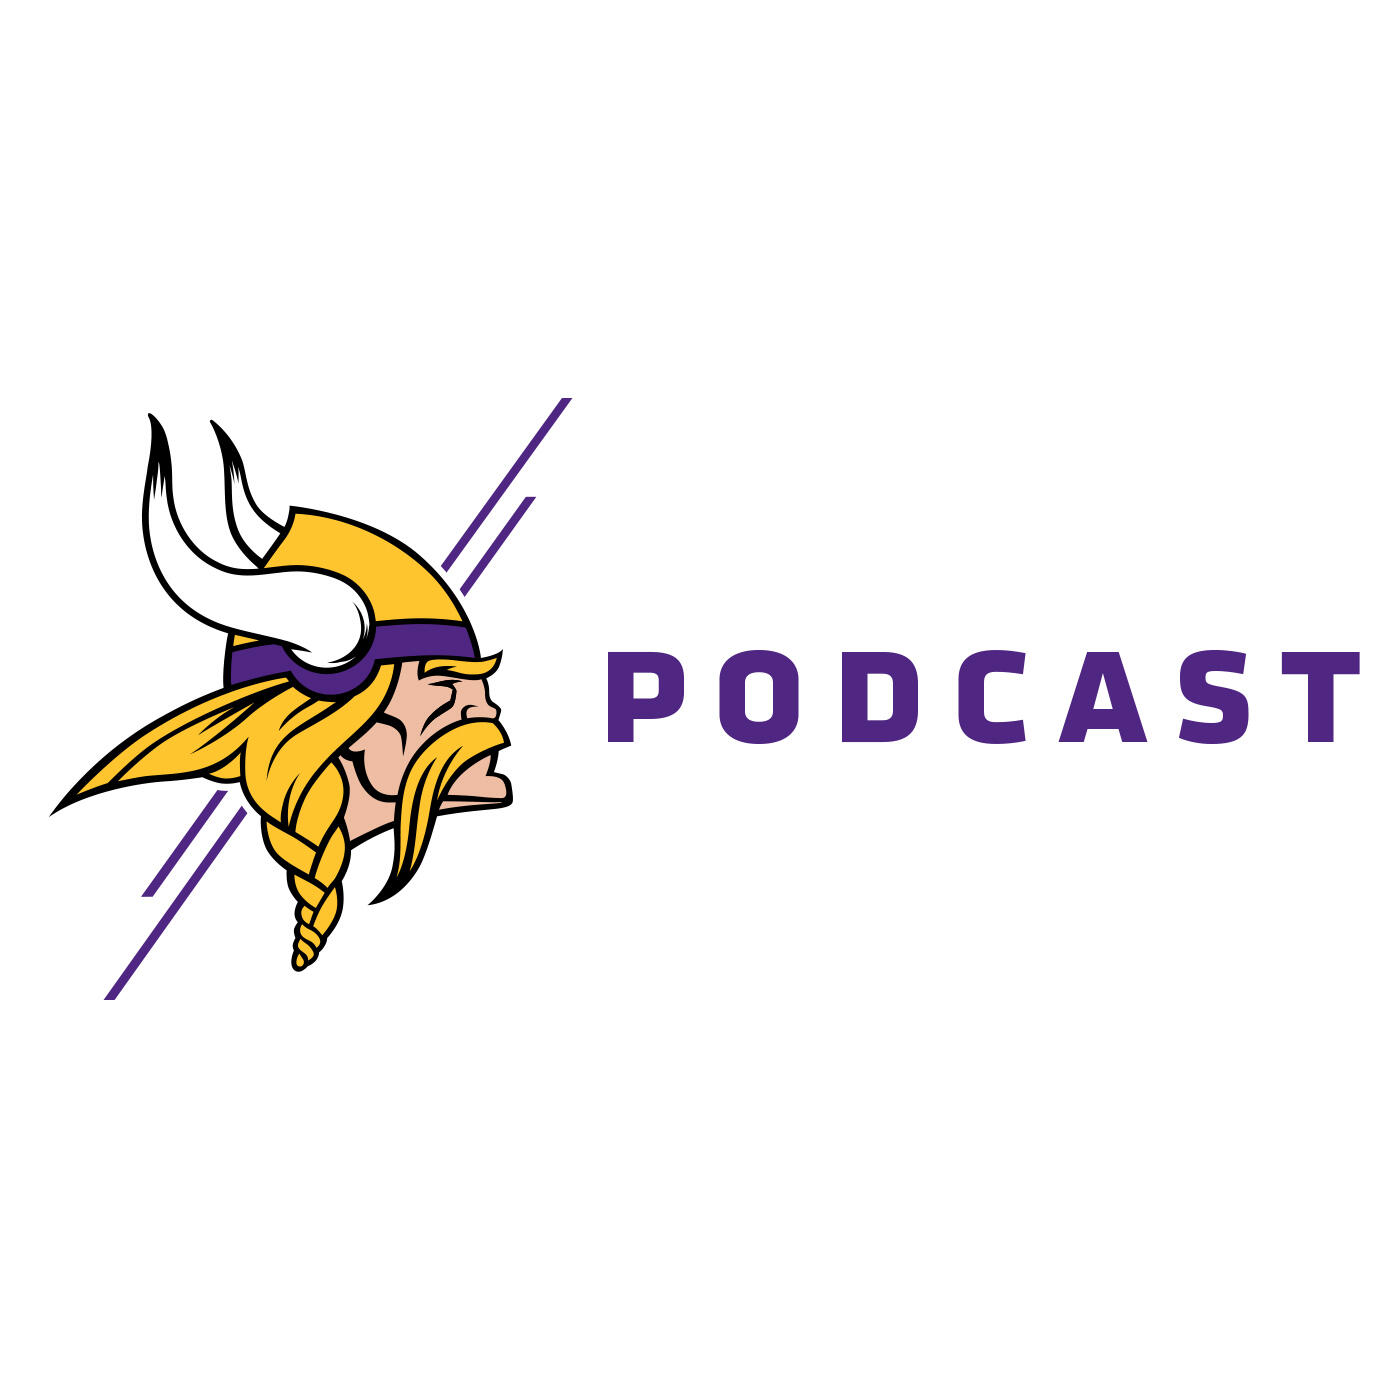 Listen to the Minnesota Vikings Episode - HIGHLIGHT: Dalvin Cook runs into the end zone to give the Vikings a 17-0 lead! #KFANVikes on iHeartRadio | iHeartRadio